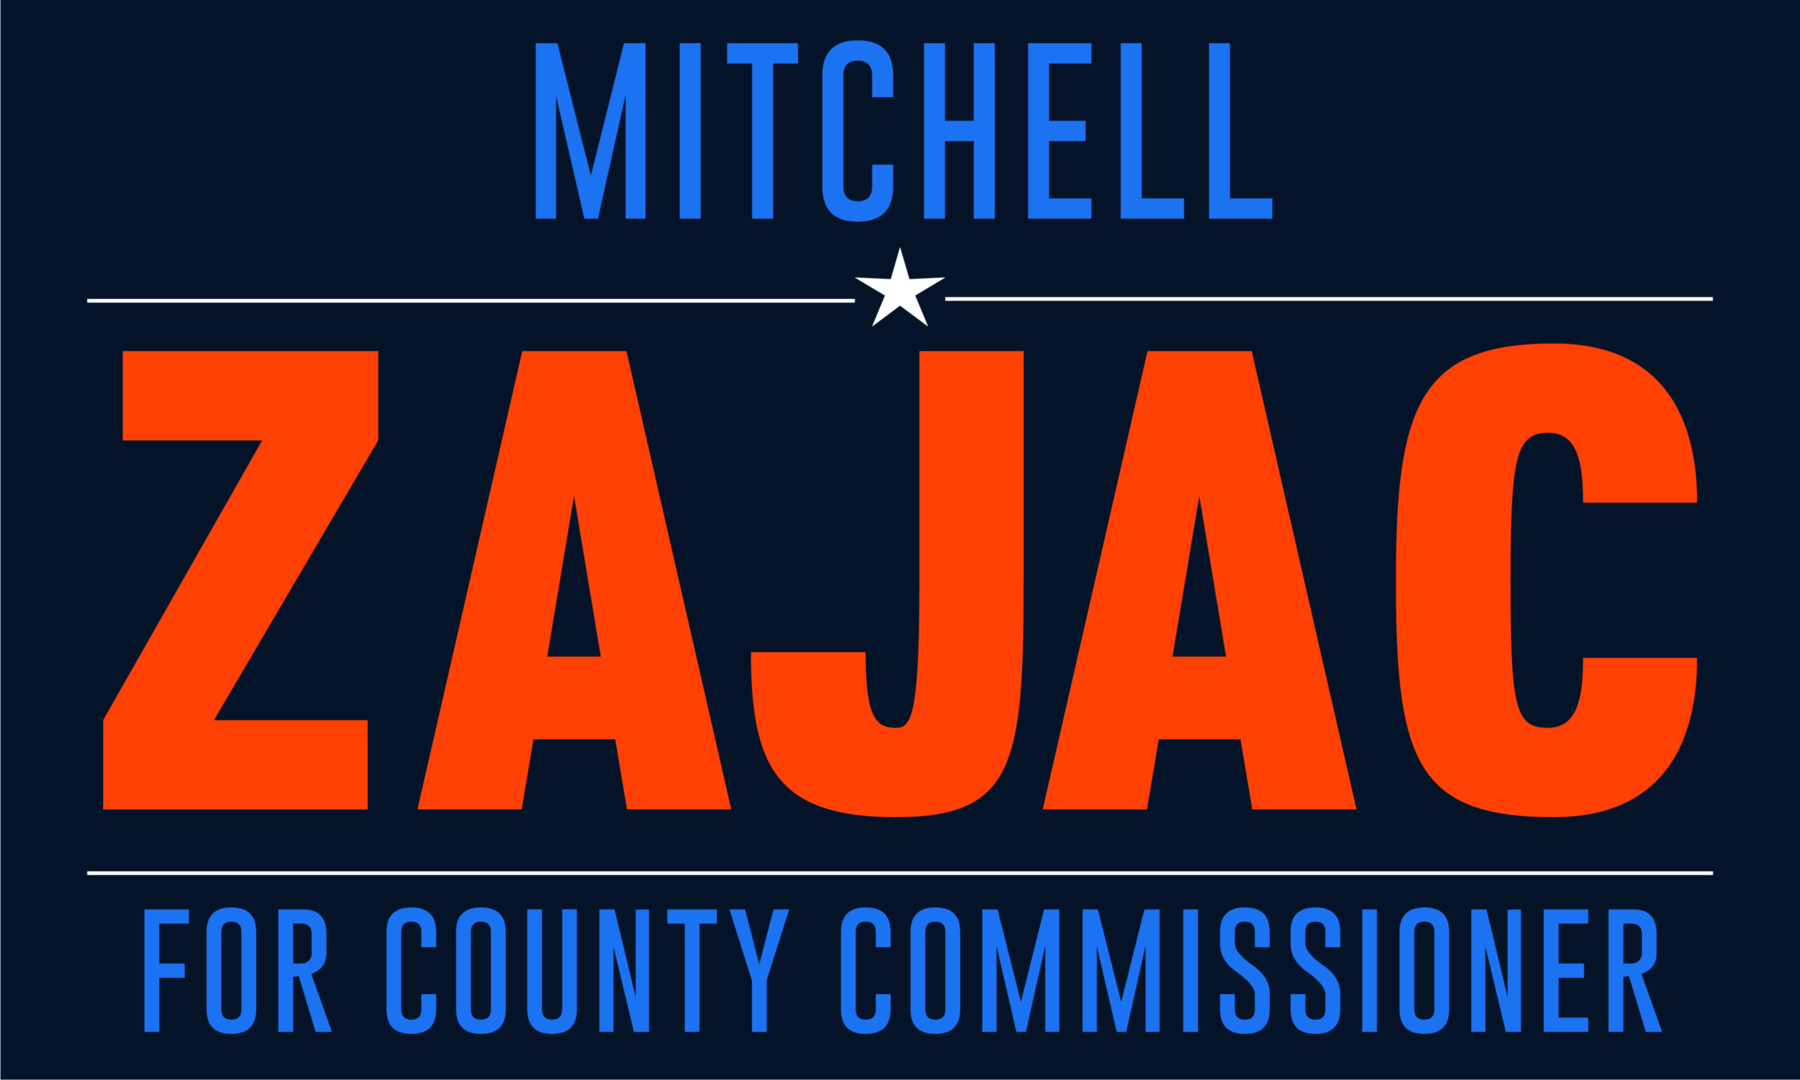 Mitchell Zajac Commissioner Committee: Butzel Long Fundraiser